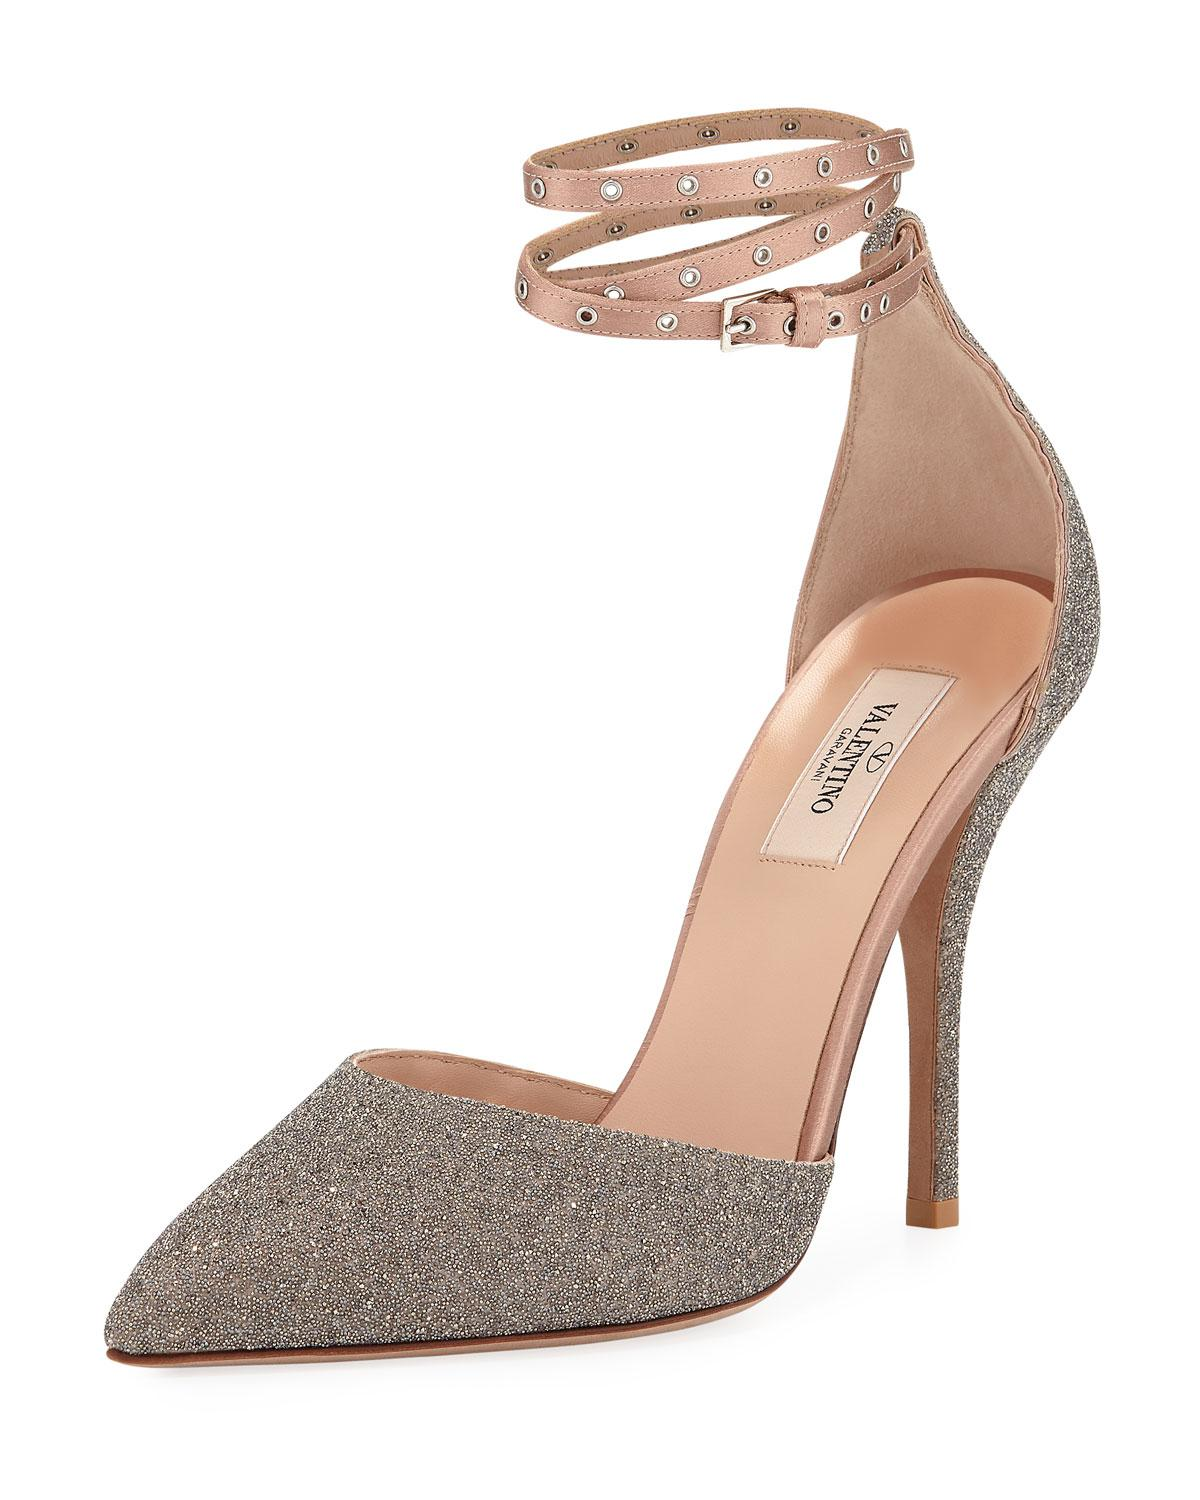 12f32c116a6 Valentino - Natural Glitter Pointed-toe Ankle-wrap Pumps - Lyst. View  fullscreen